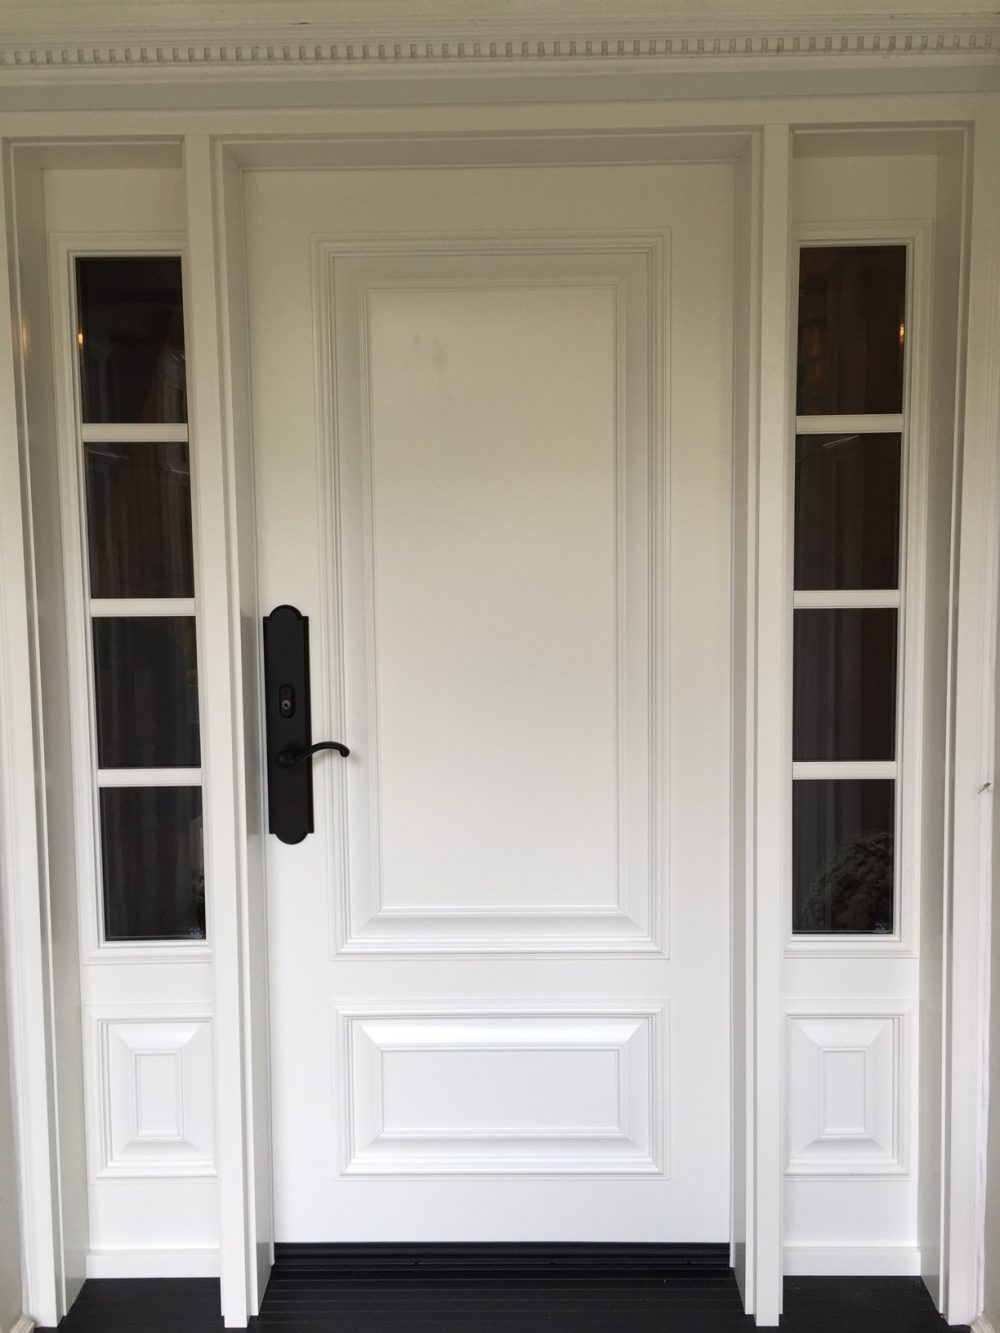 steel door system white with 2 sidelights and executive panels